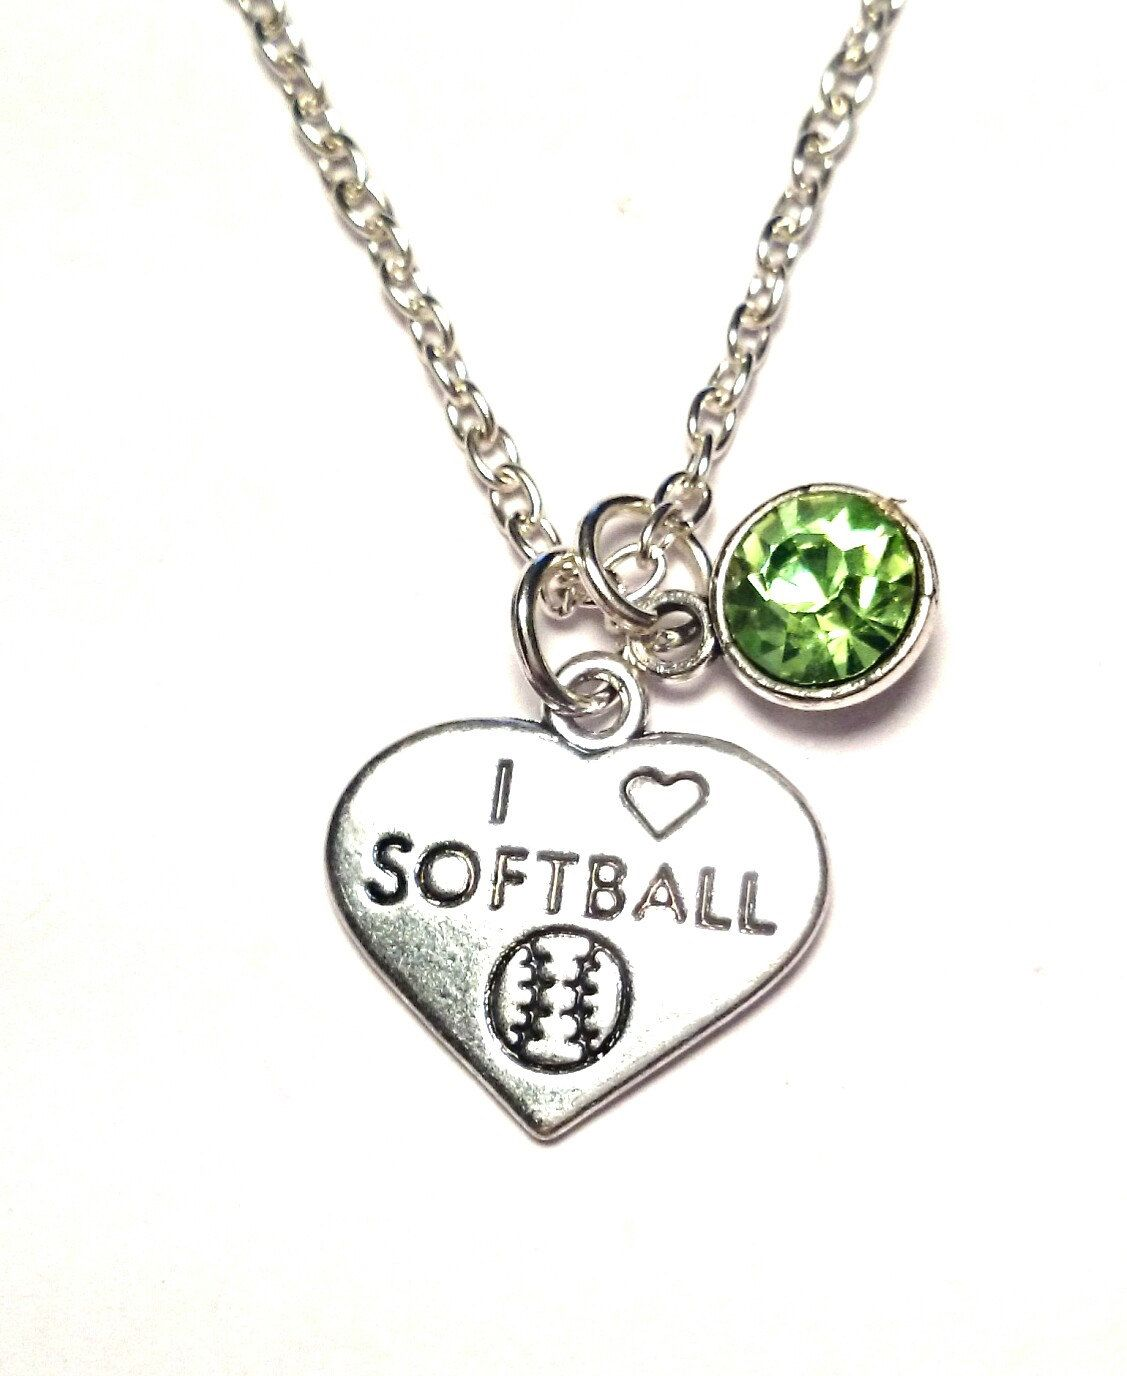 sb jewelry silver softball gimmedat love necklace products customizable